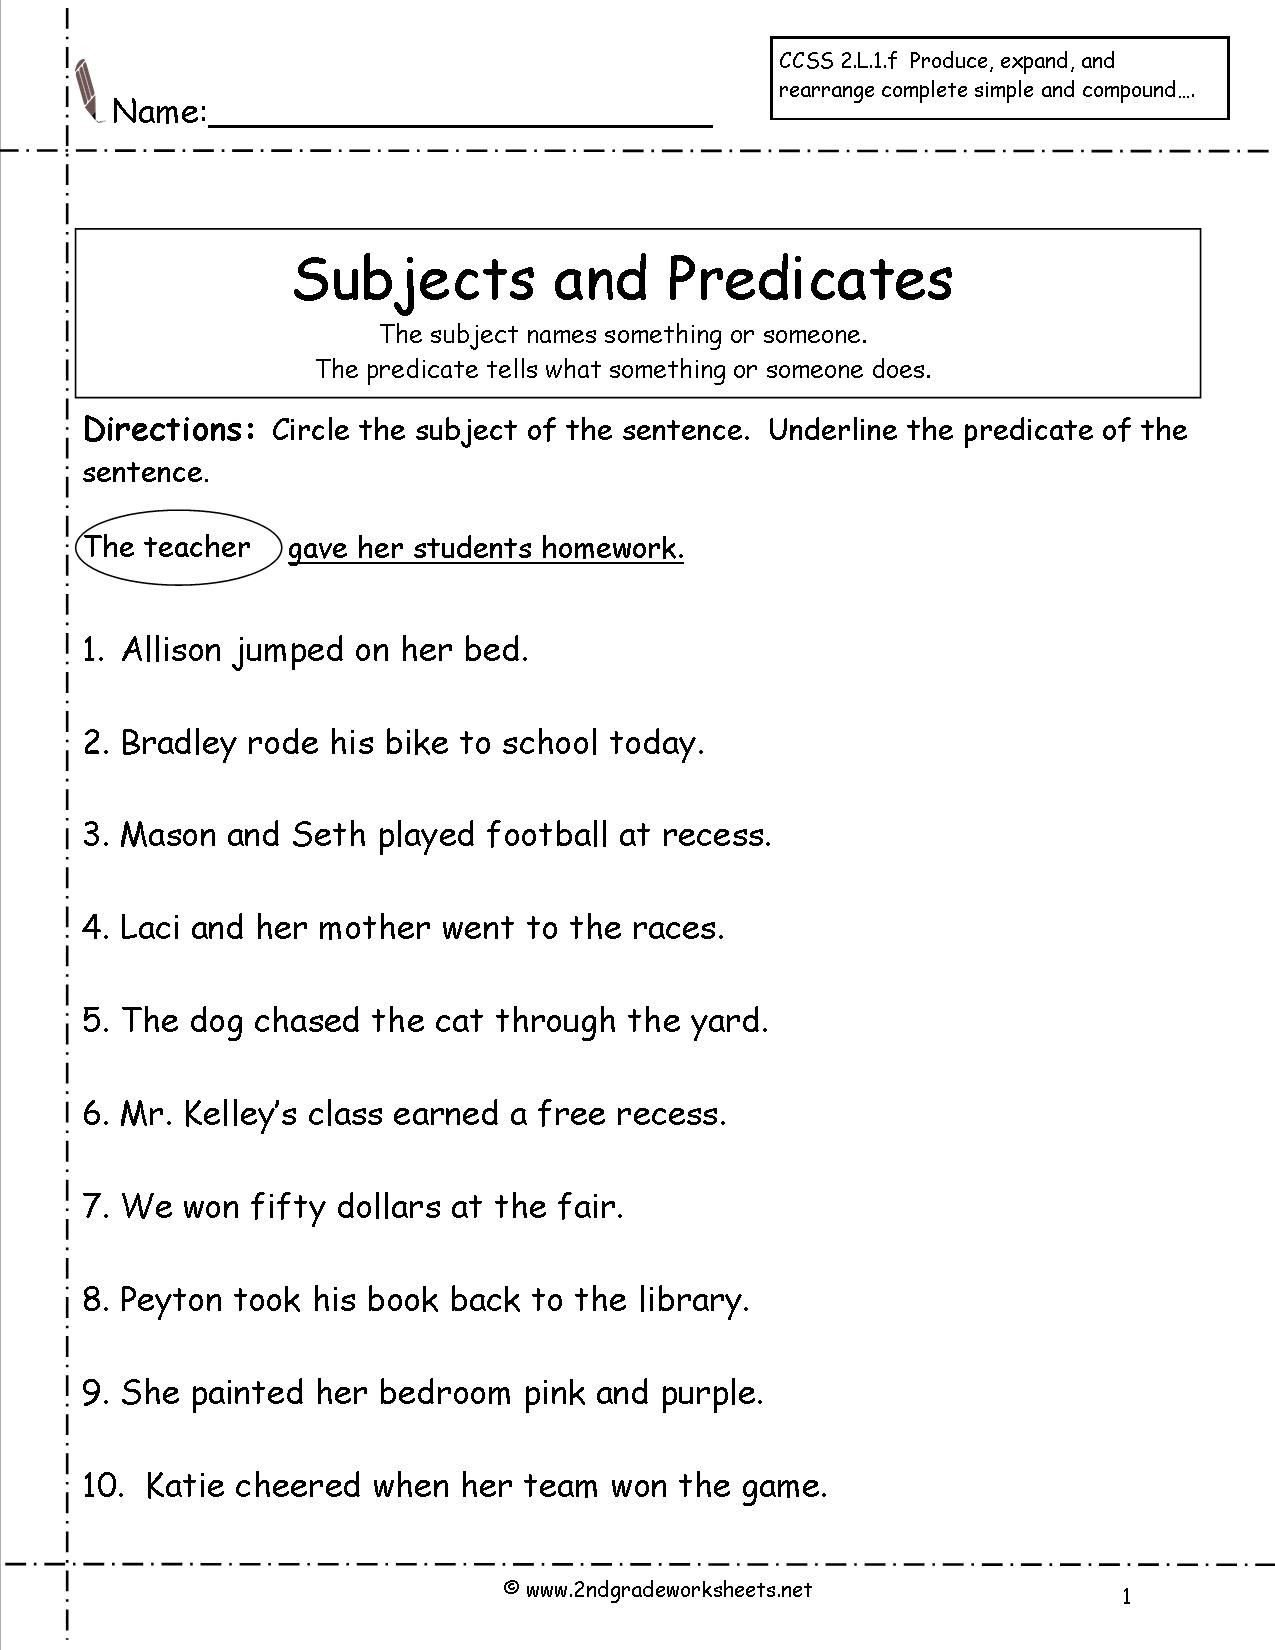 Topic Sentence Worksheets 2nd Grade Subject Predicate Worksheets 2nd Grade Google Search